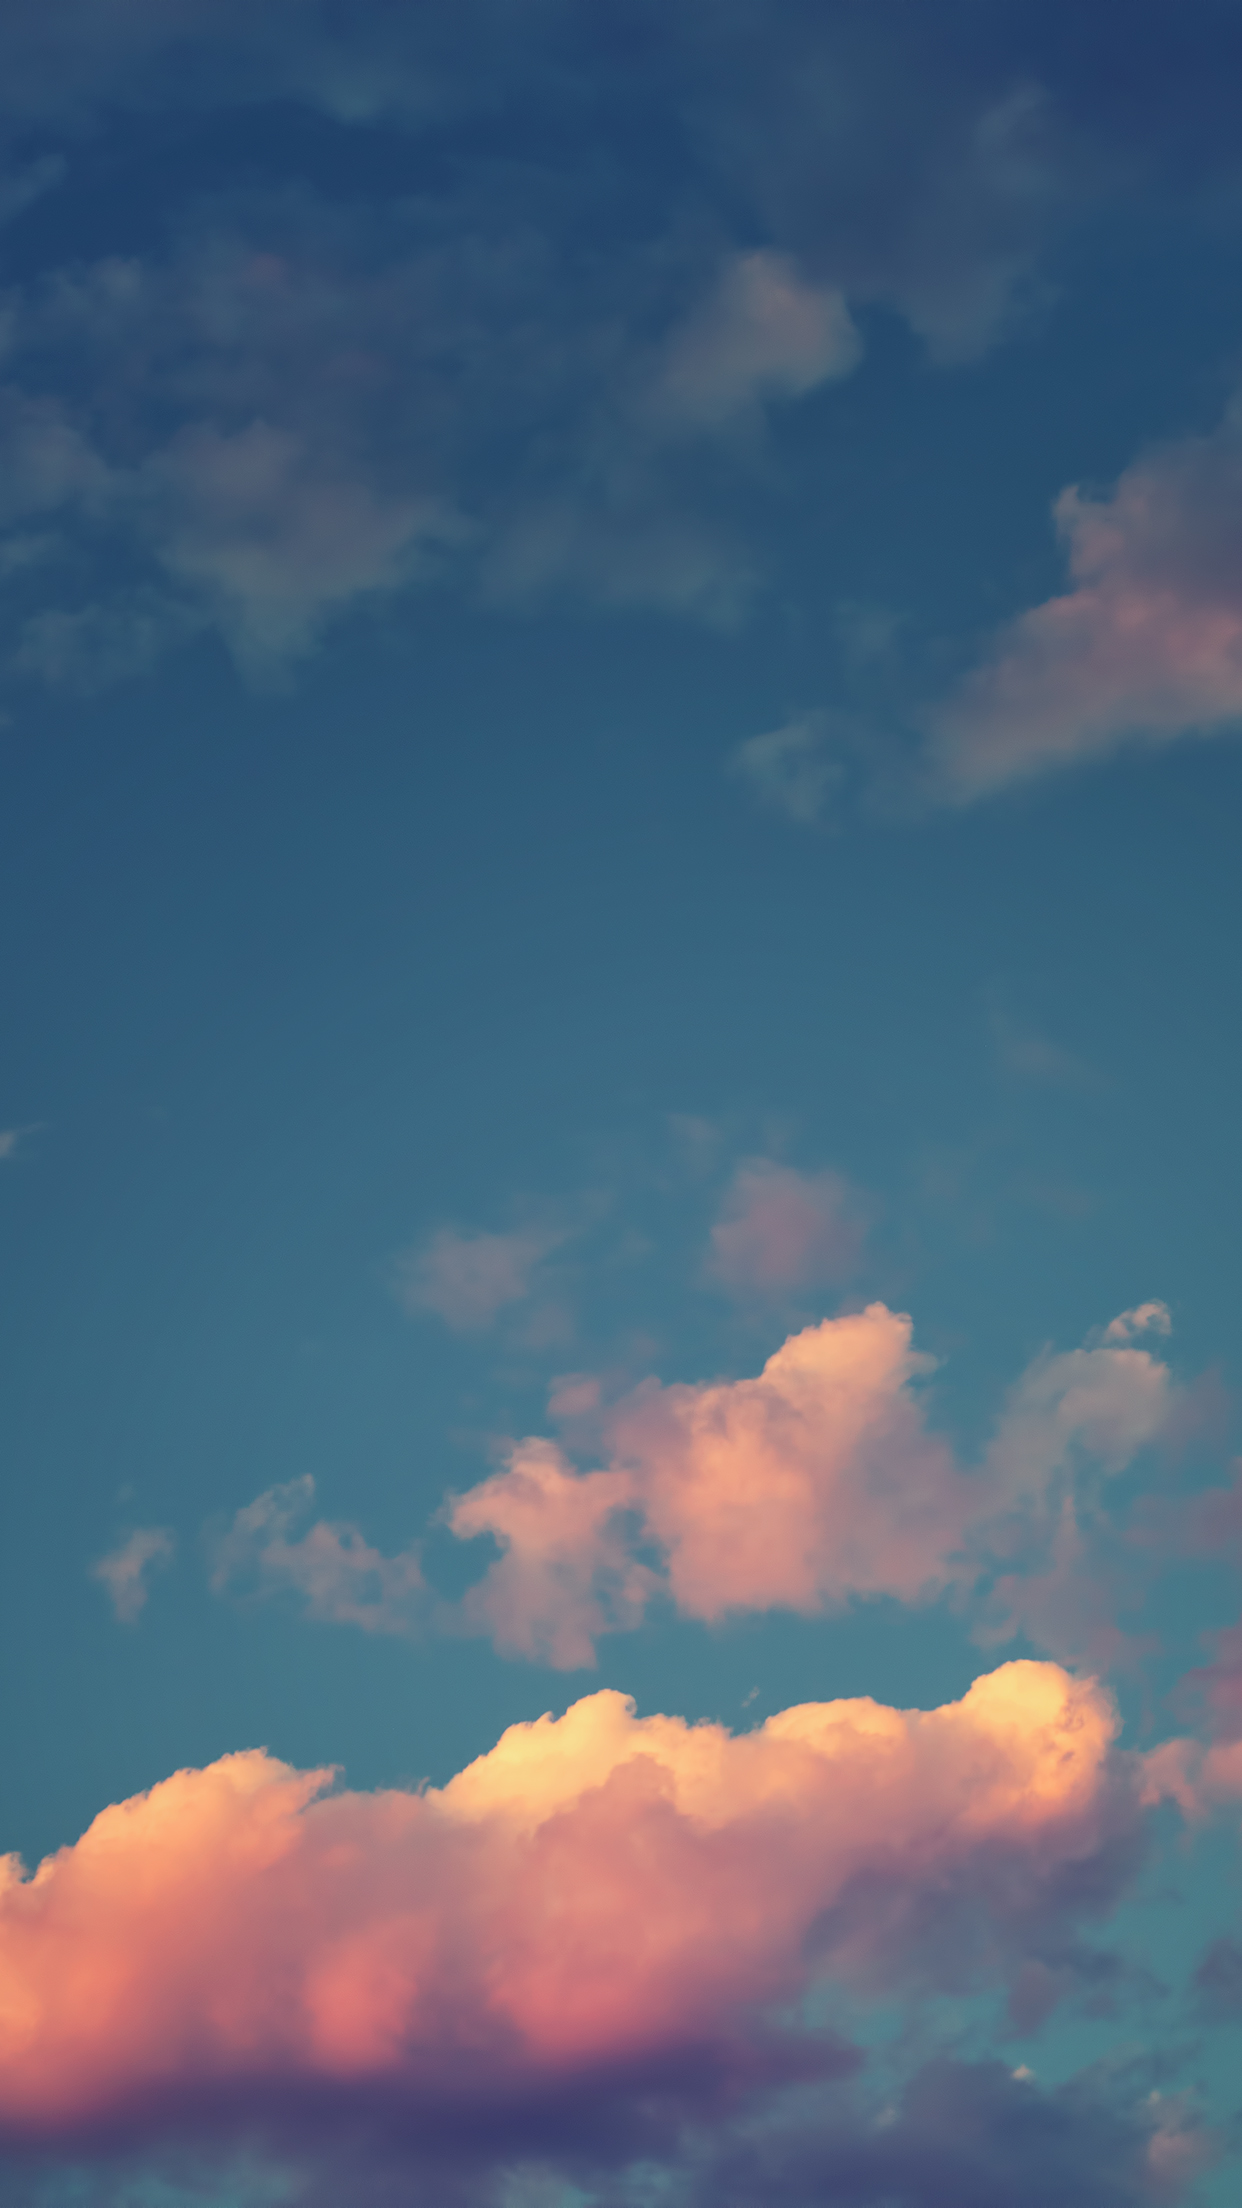 Sunset And Clouds Wallpapers For IPhone 6 And IPhone 6 Plus